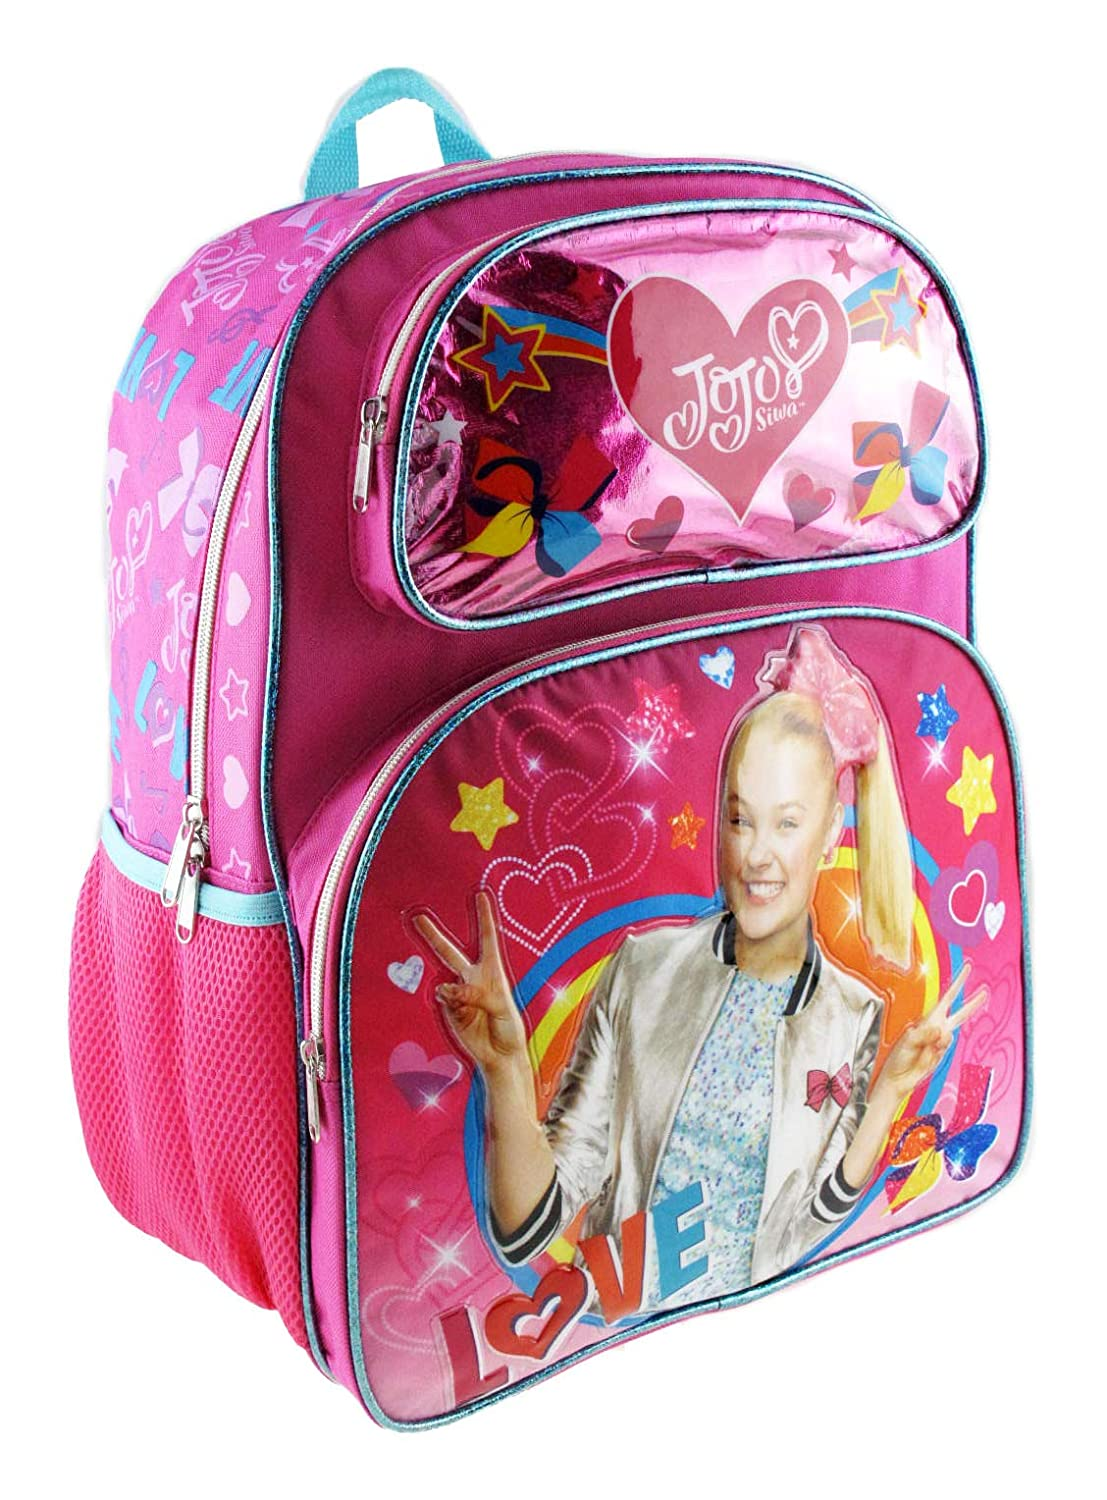 Jojo Siwa 16 Deluxe 3D Backpack /& Matching Insulated Lunch Box PLUS Erasers